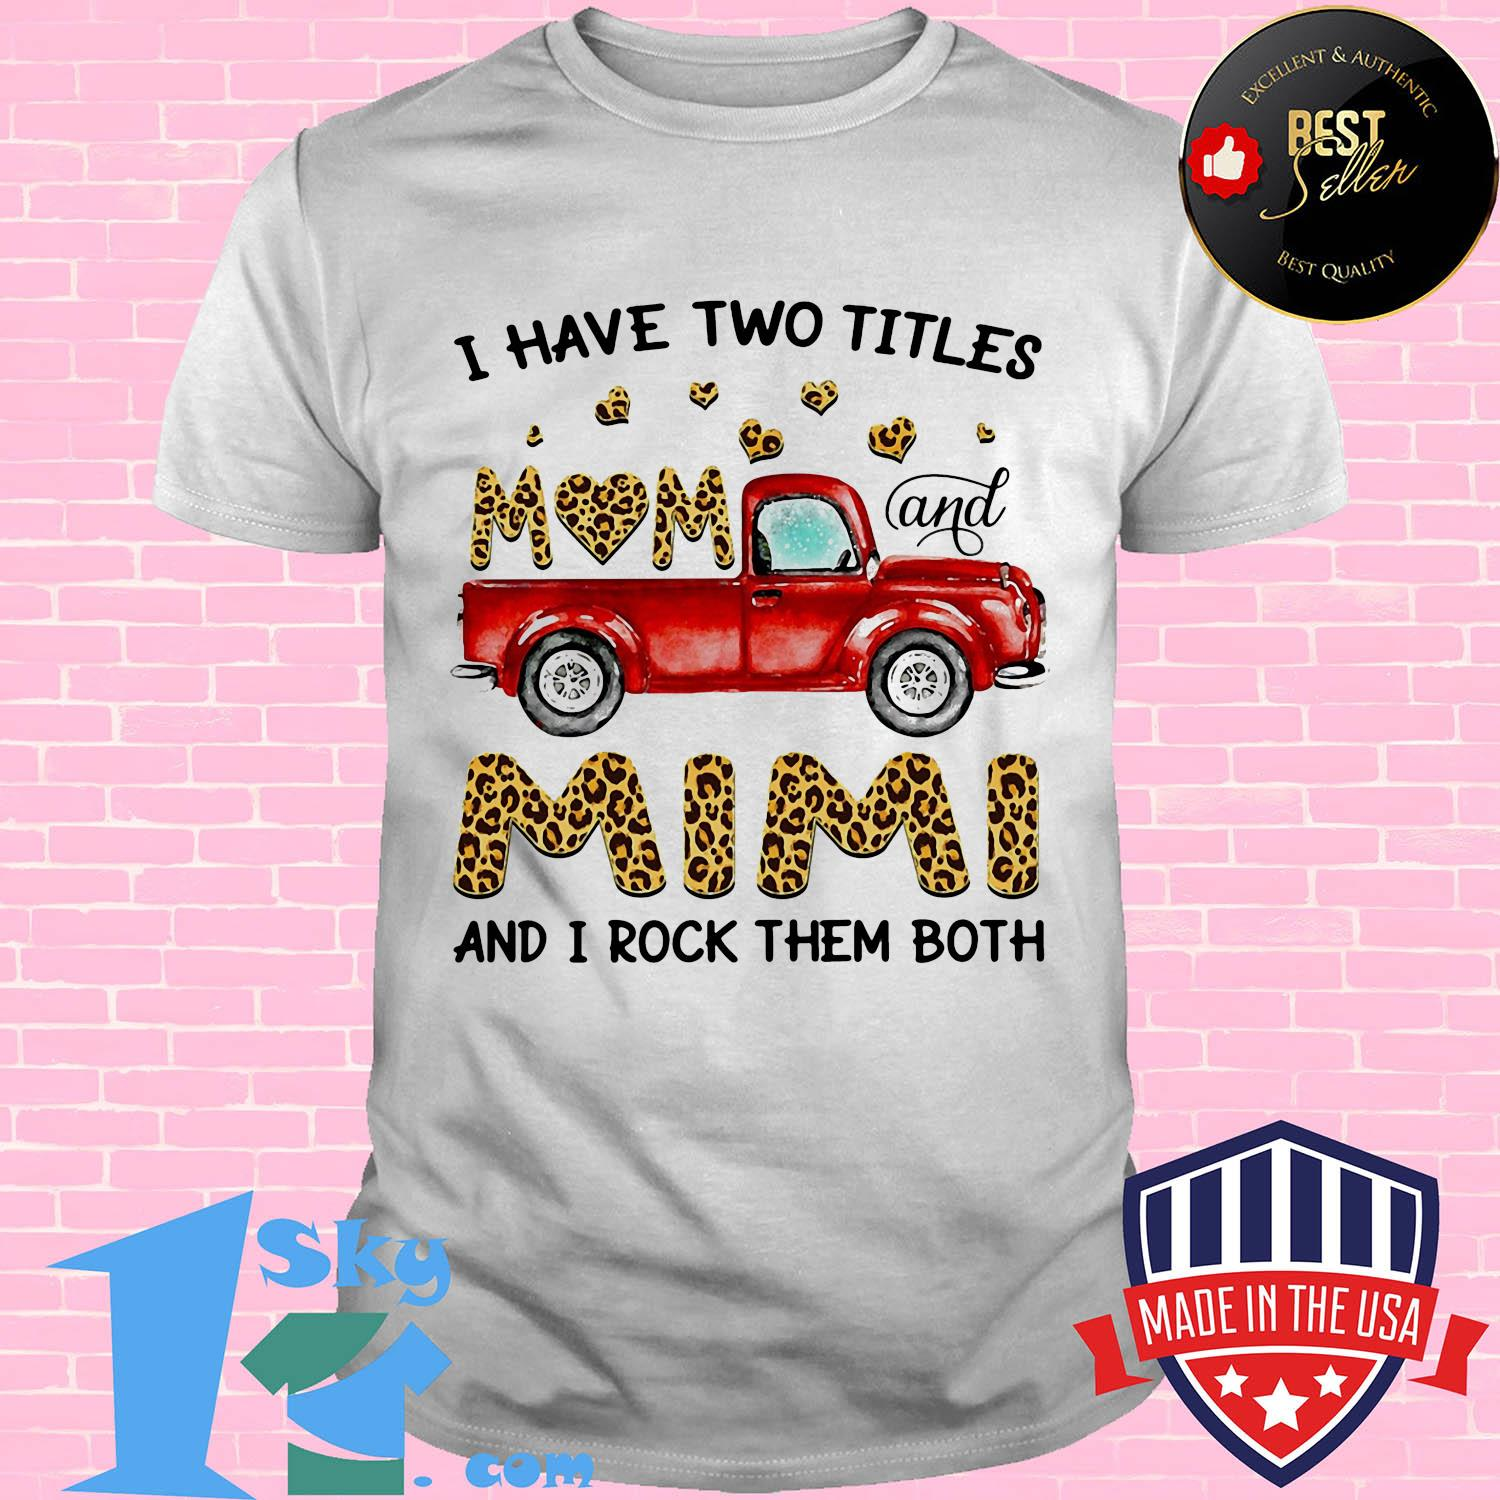 I have two titles mom and Mimi and I rock them both car leopard shirt